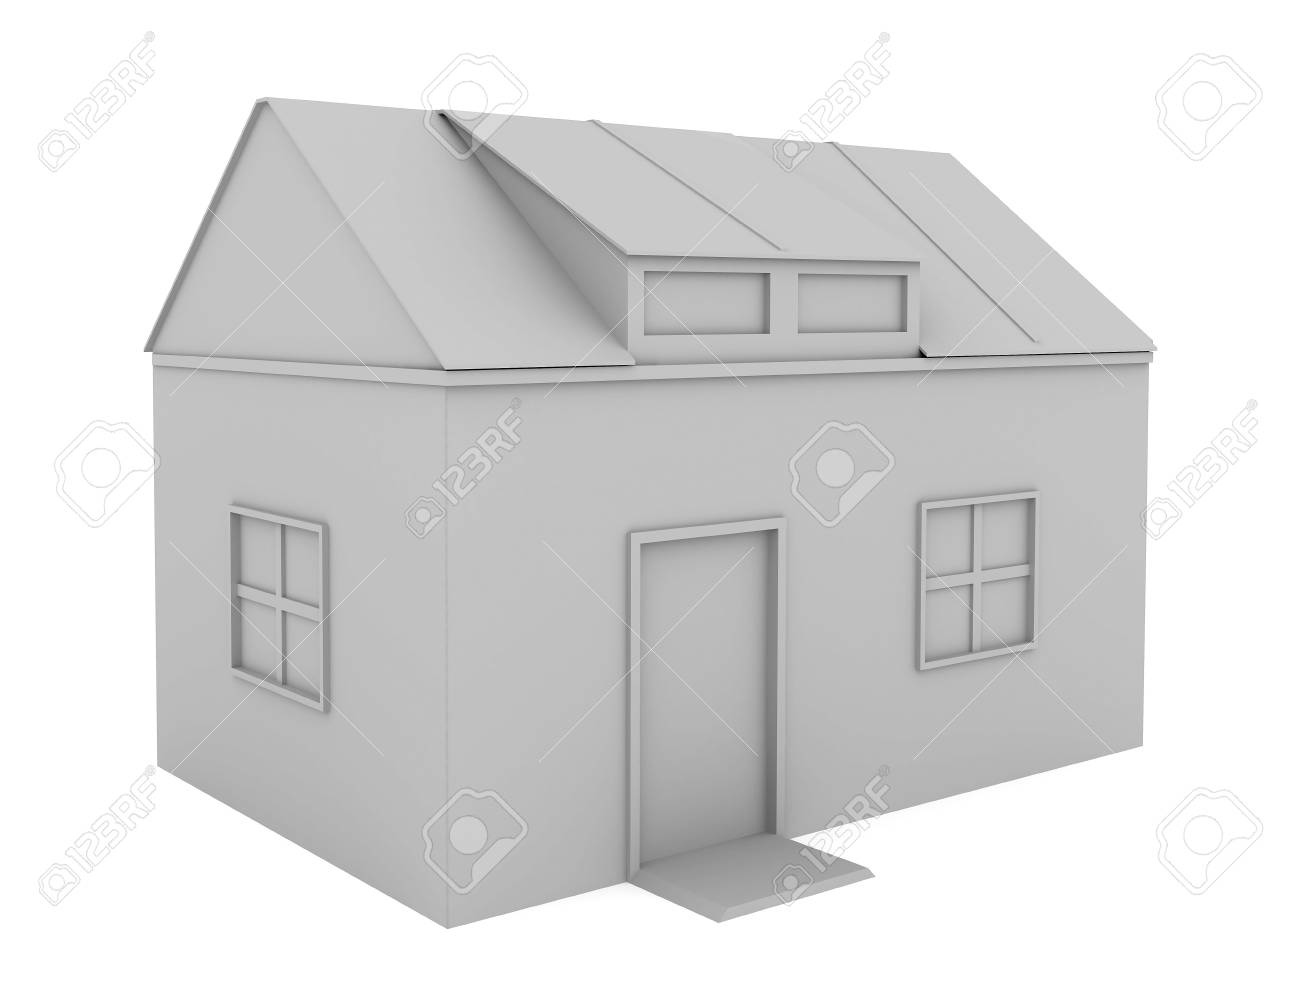 The house with a red roof on a green grass Stock Photo - 5331012